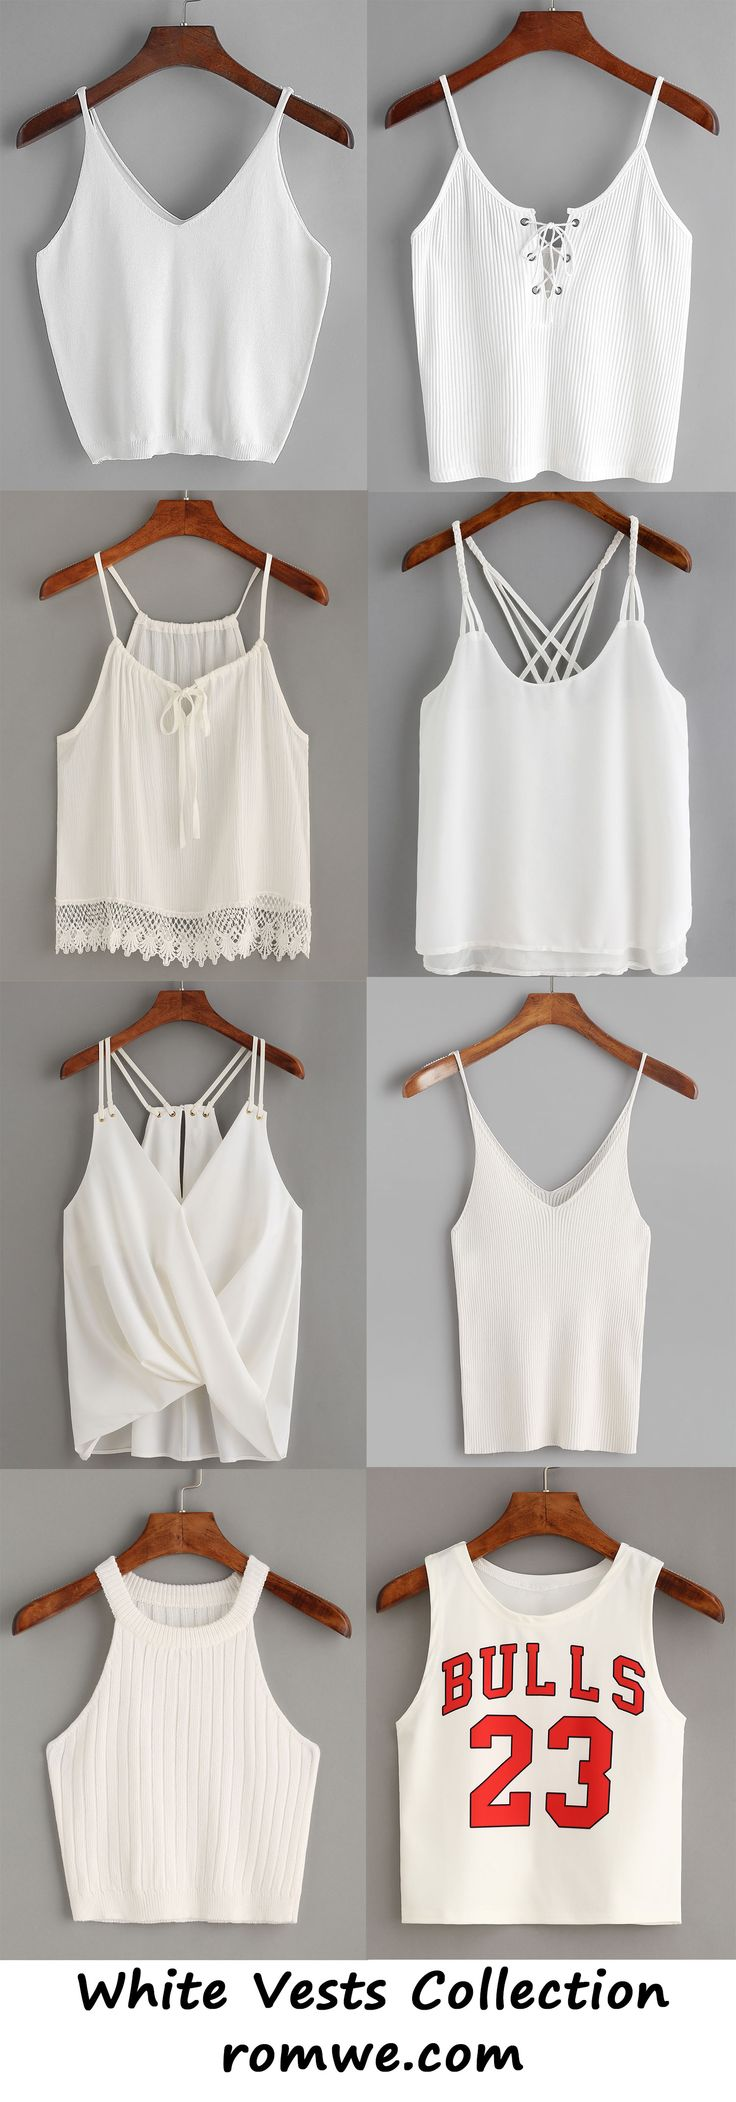 white vests collection - romwe.com